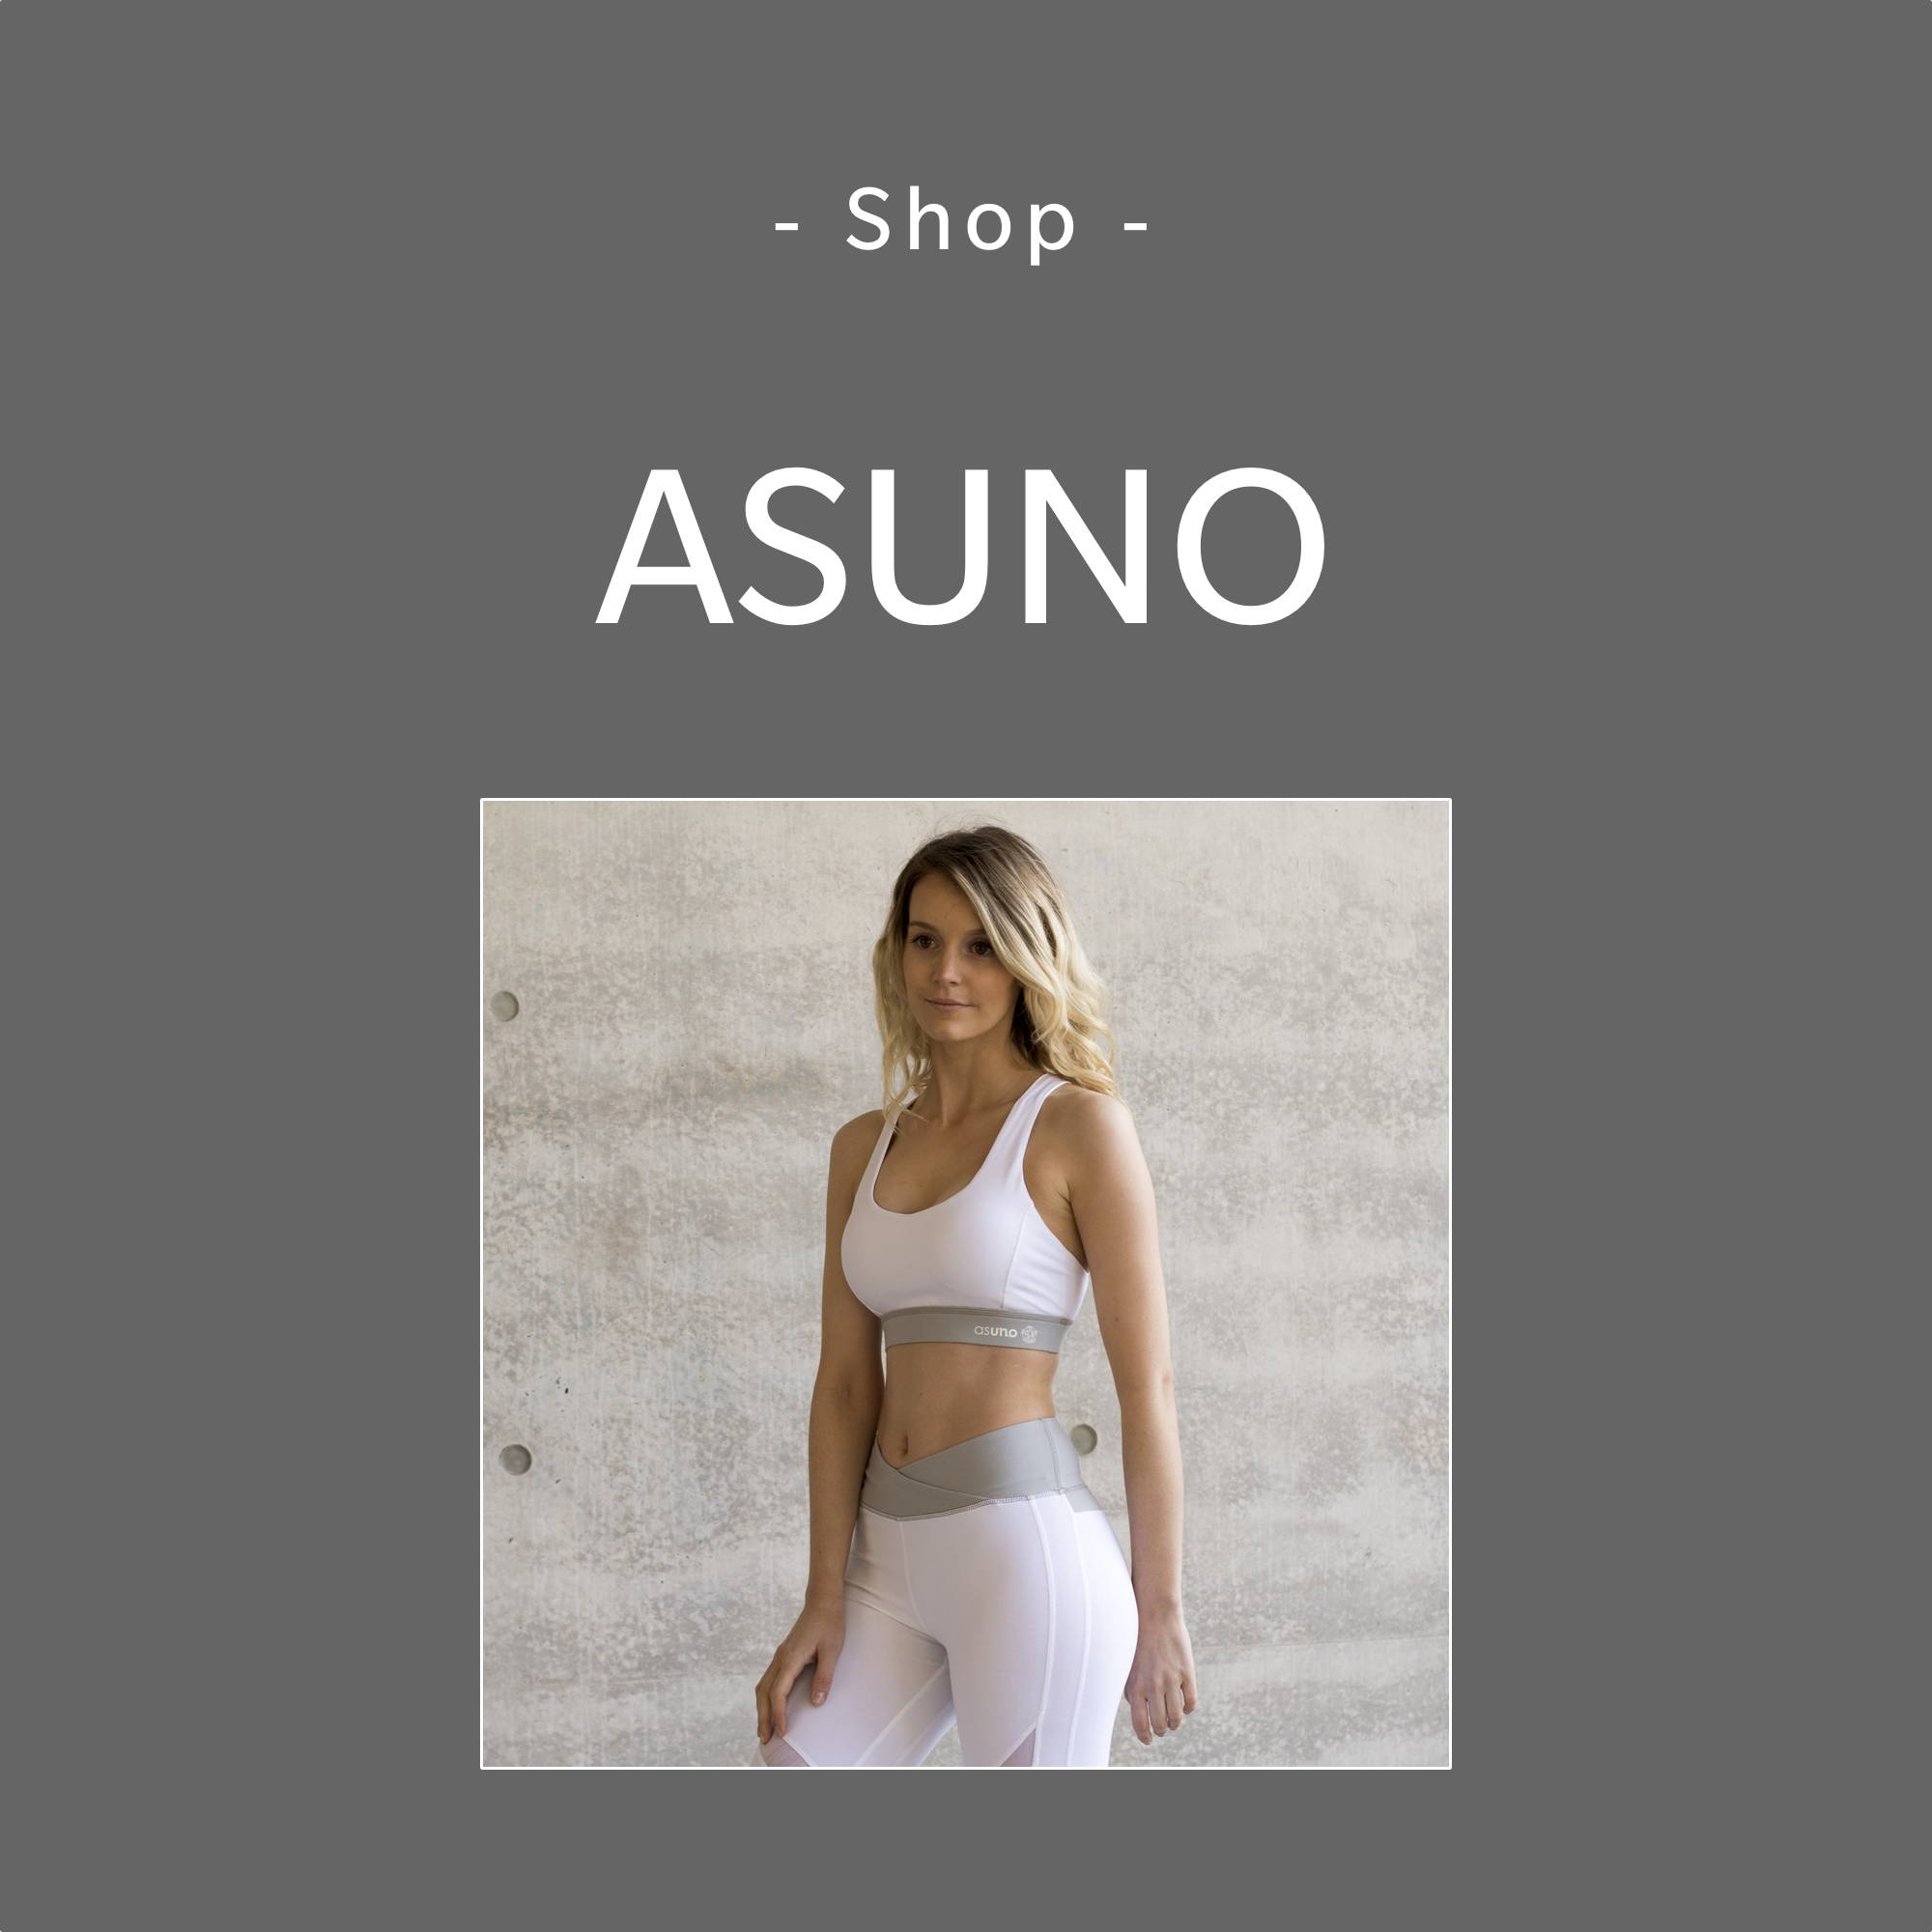 Asuno Brand Page